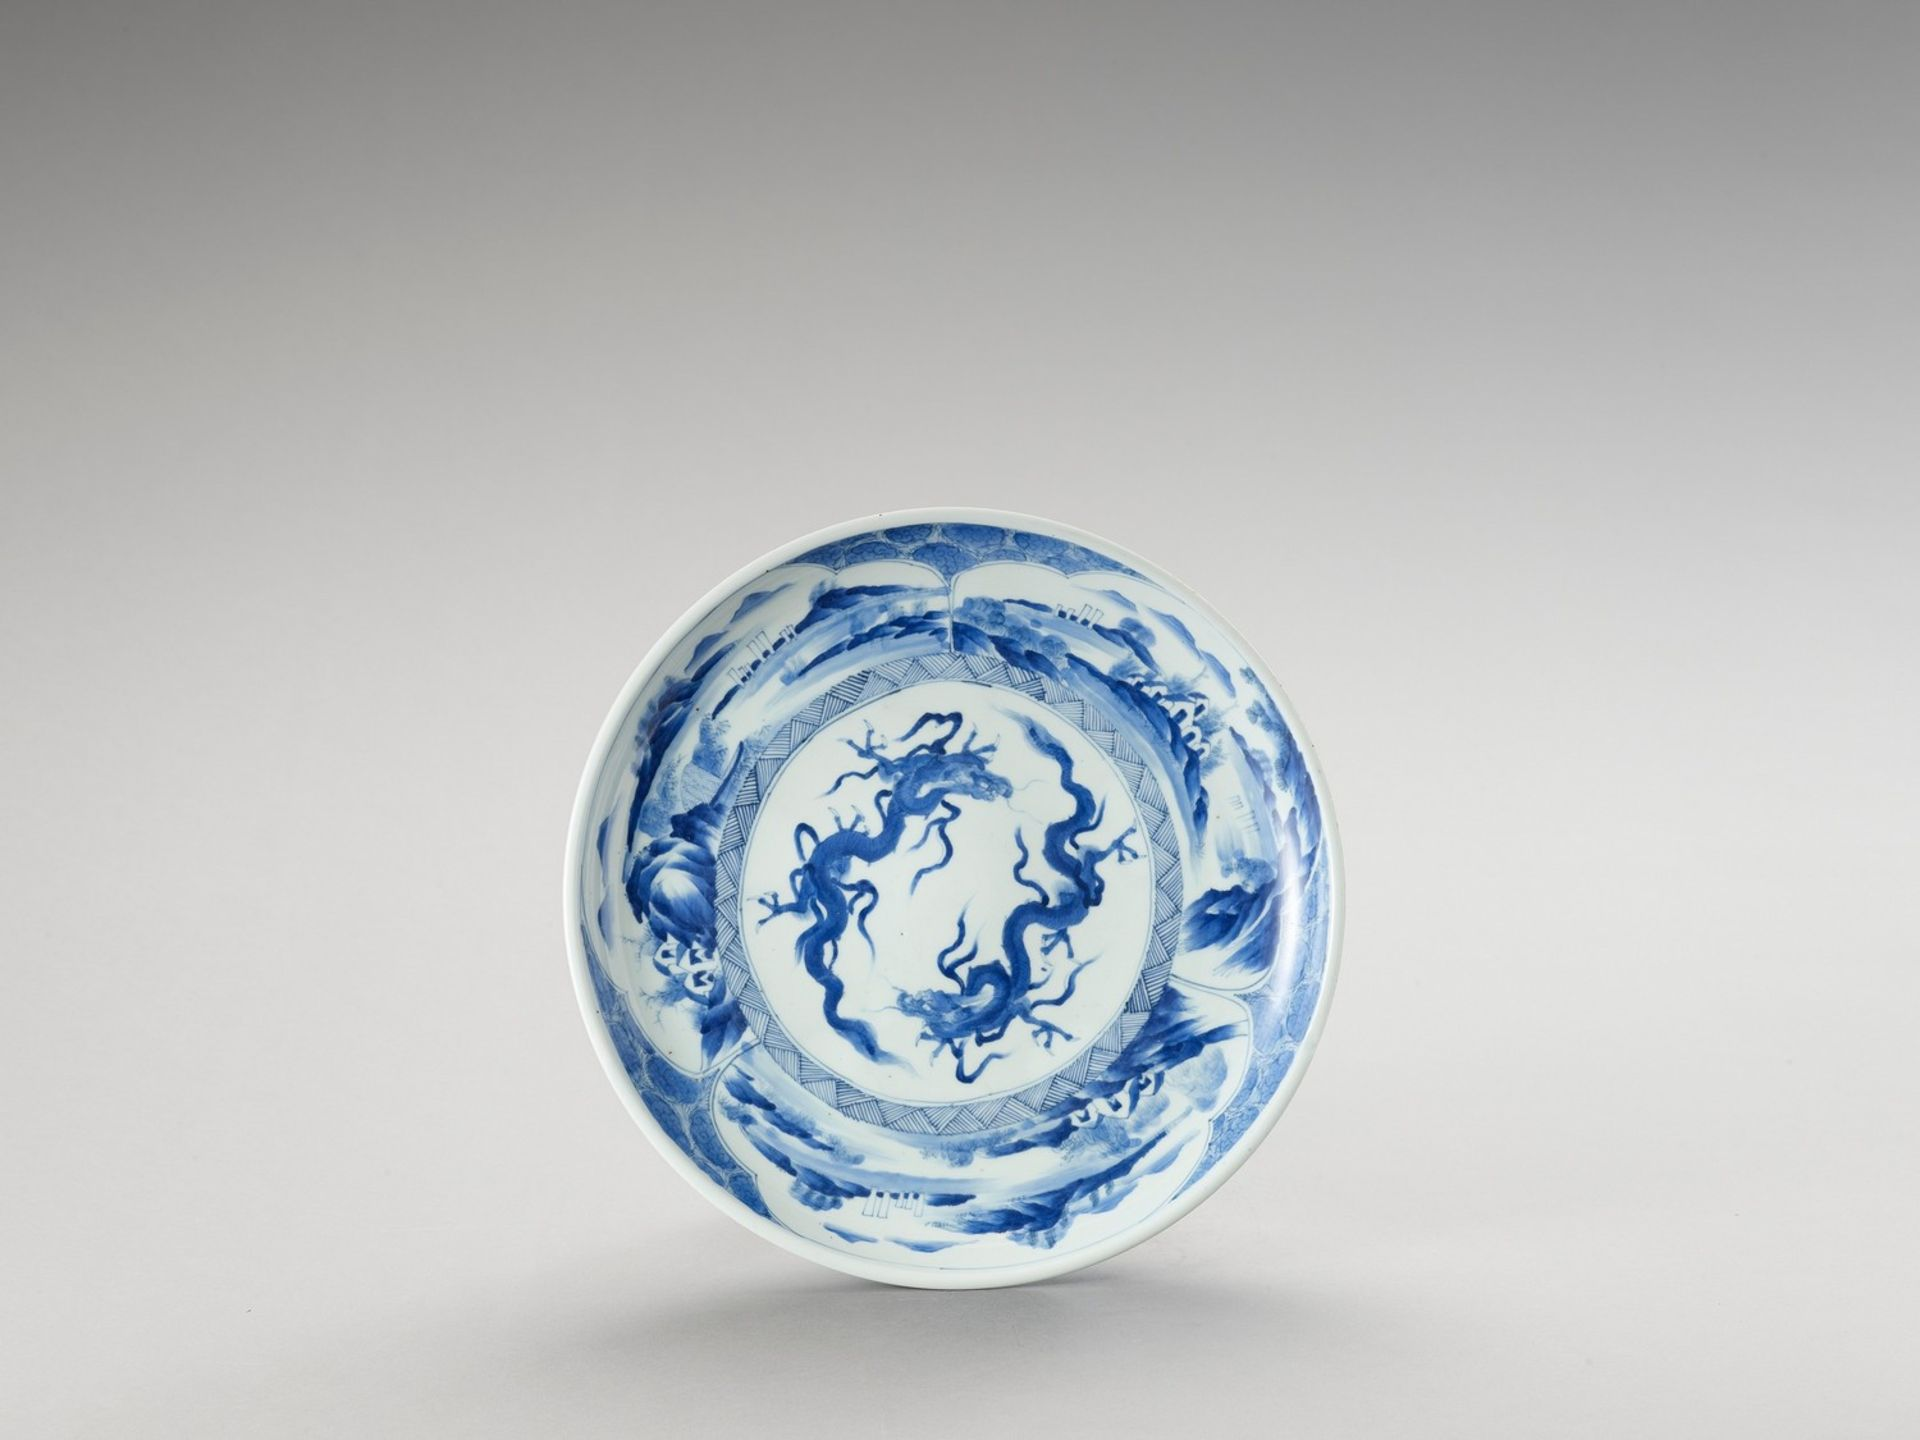 A BLUE AND WHITE PORCELAIN 'DRAGON' PLATE